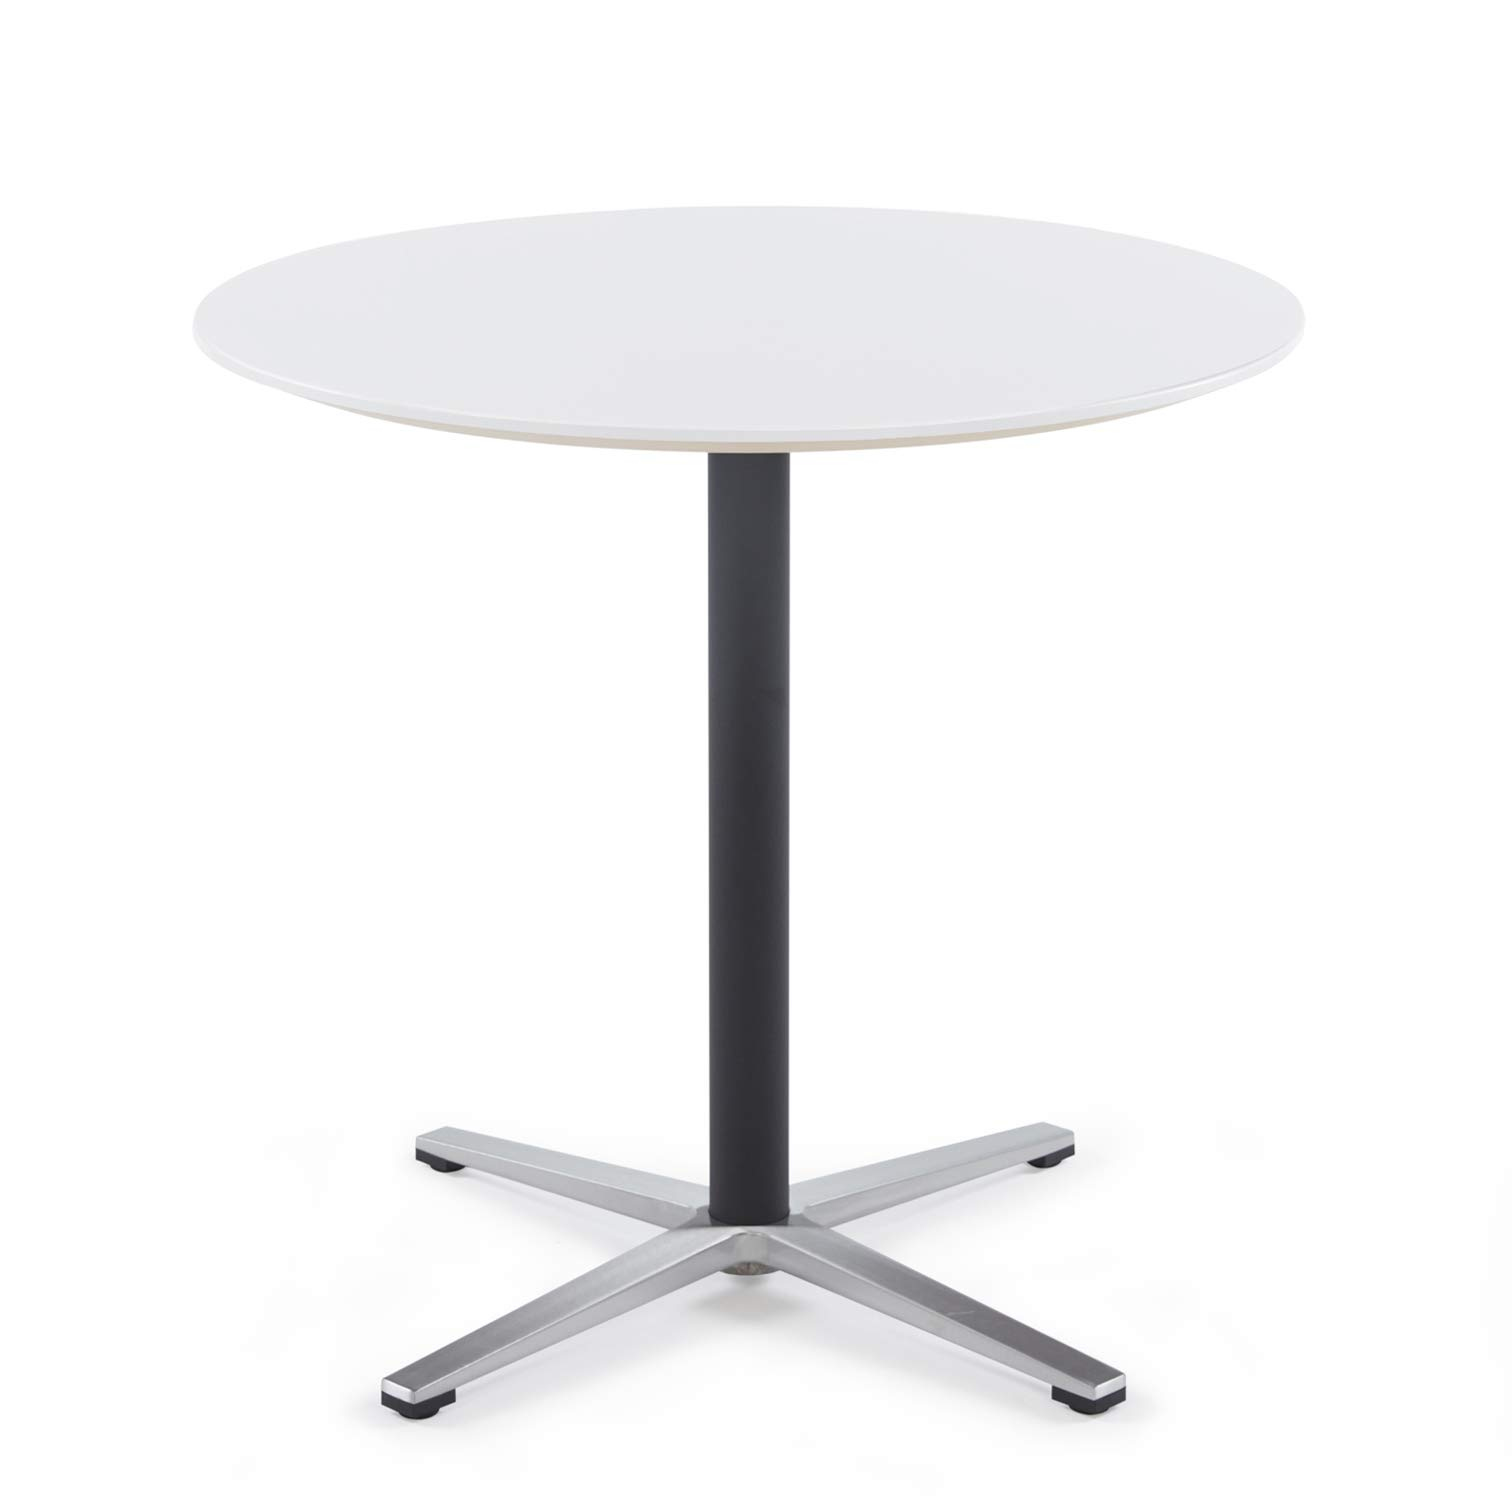 Sunon Round Bistro Table Small Round Table with X-Style Pedestal for Pub Table/Cafe Table/Office Table/Conference Table (Moon White,29.5-Inch Height)